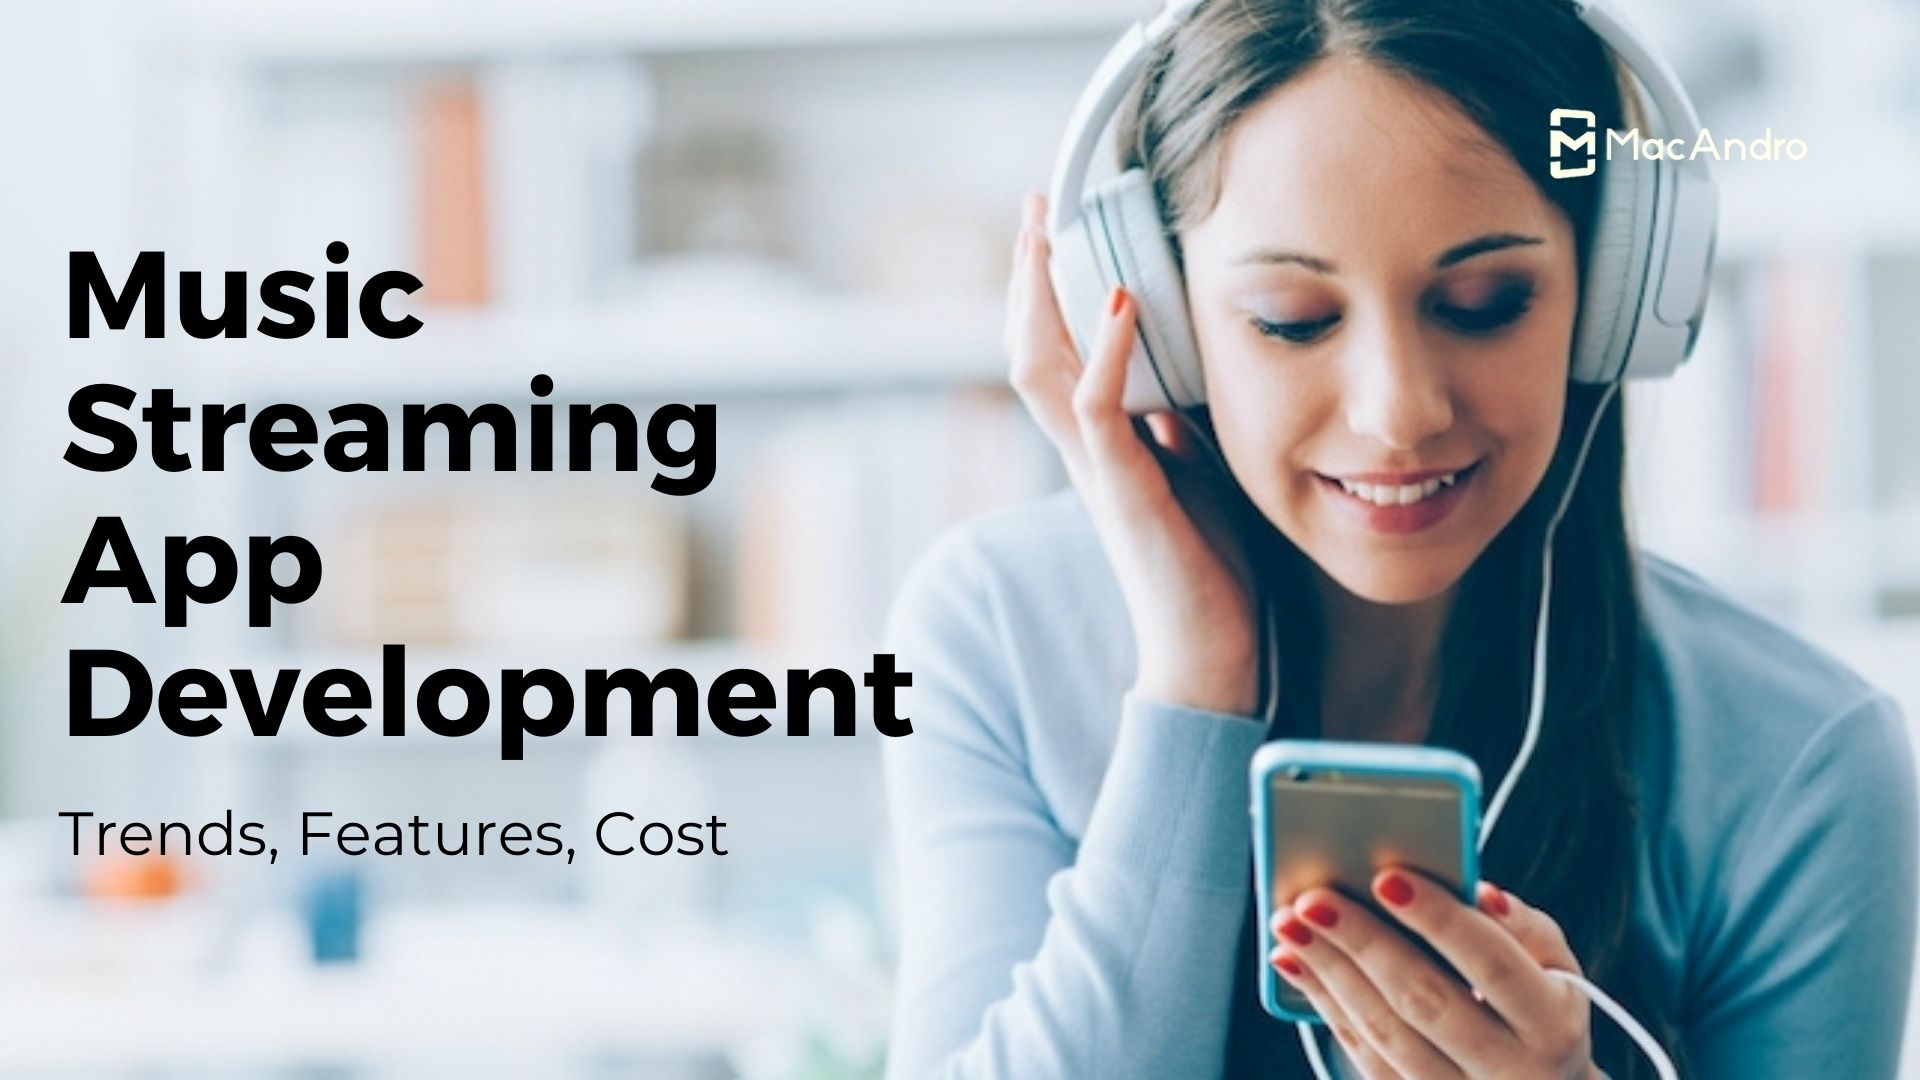 Music Streaming App Development - Develop a Next Great Music Streaming App like Spotify